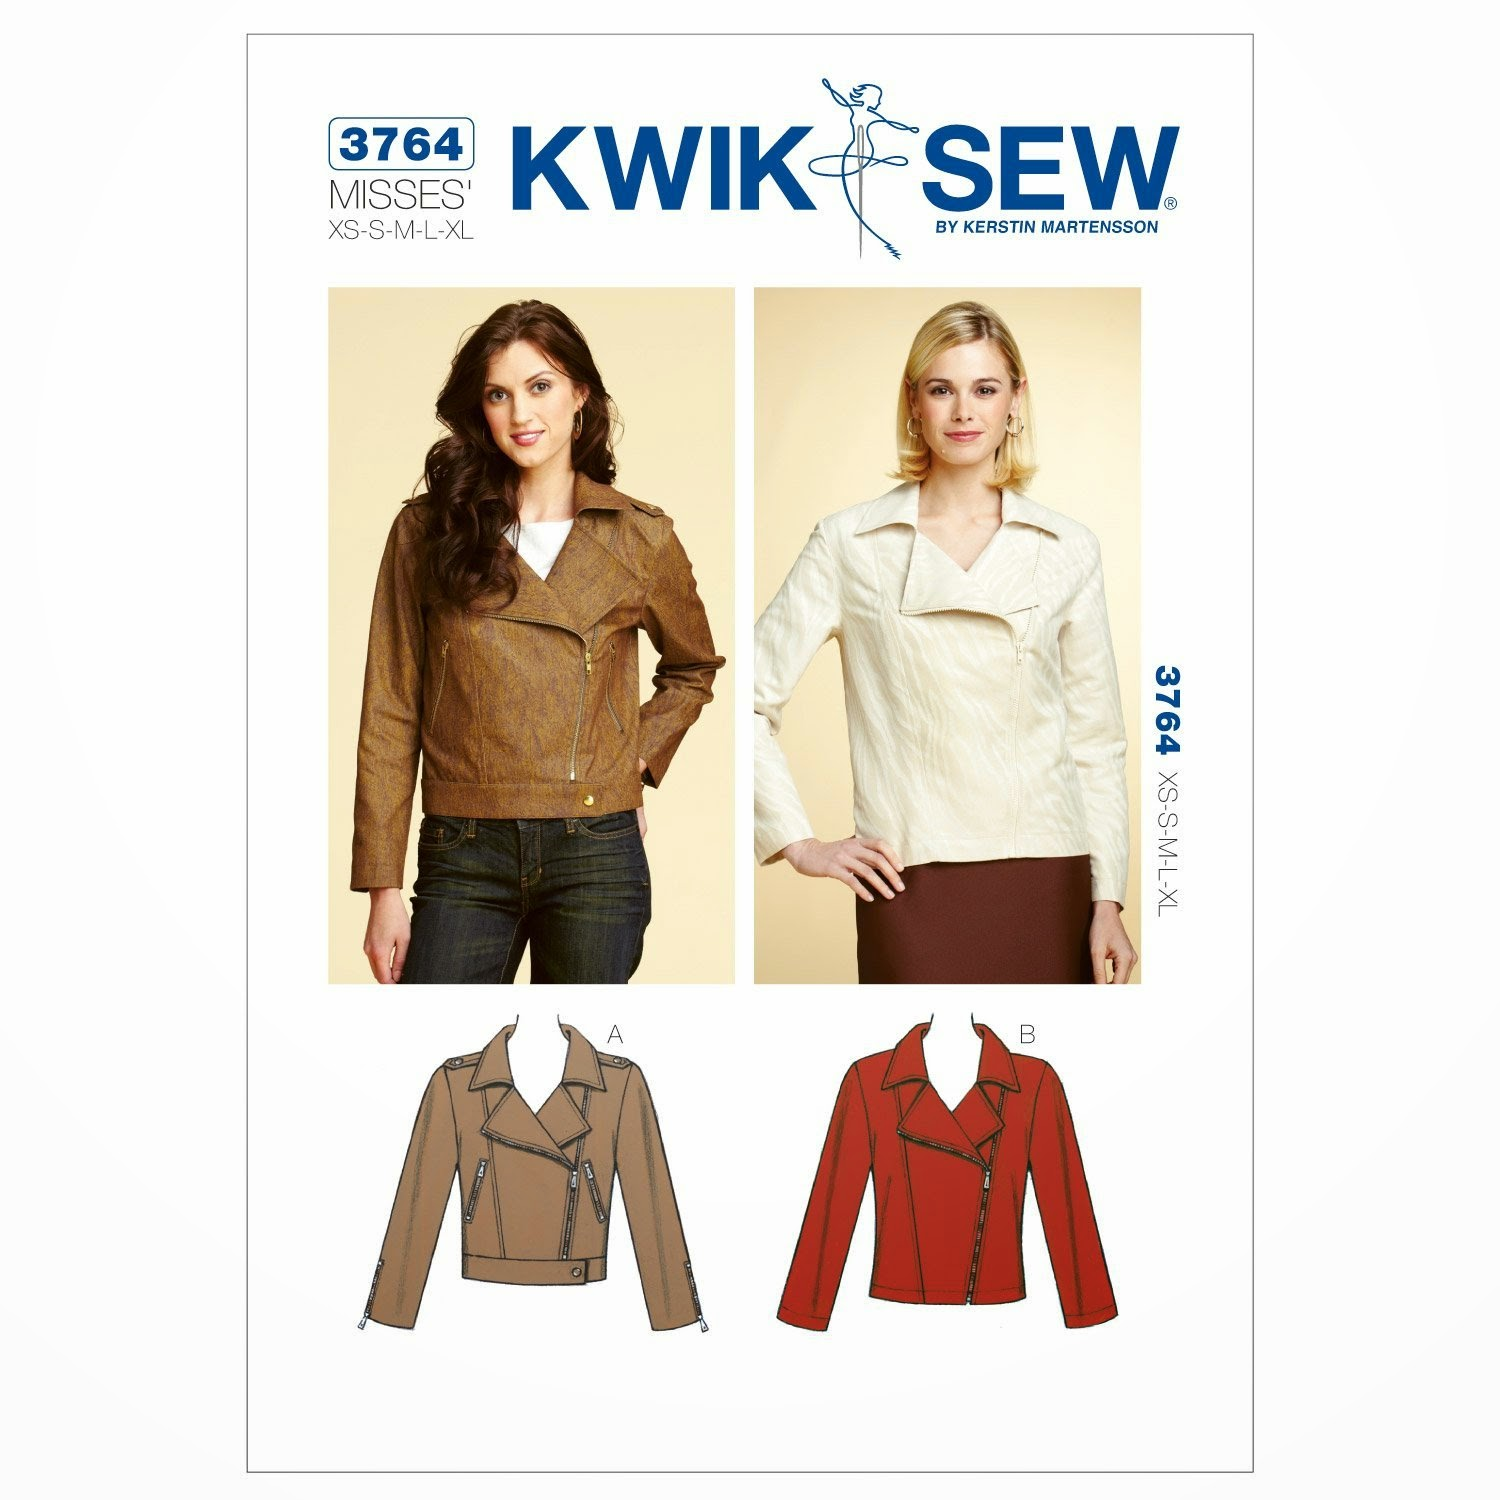 Kwik sew pattern 2108 choice image craft decoration ideas kwik sew pattern 2108 images craft decoration ideas kwik sew pattern 2108 image collections craft decoration jeuxipadfo Gallery